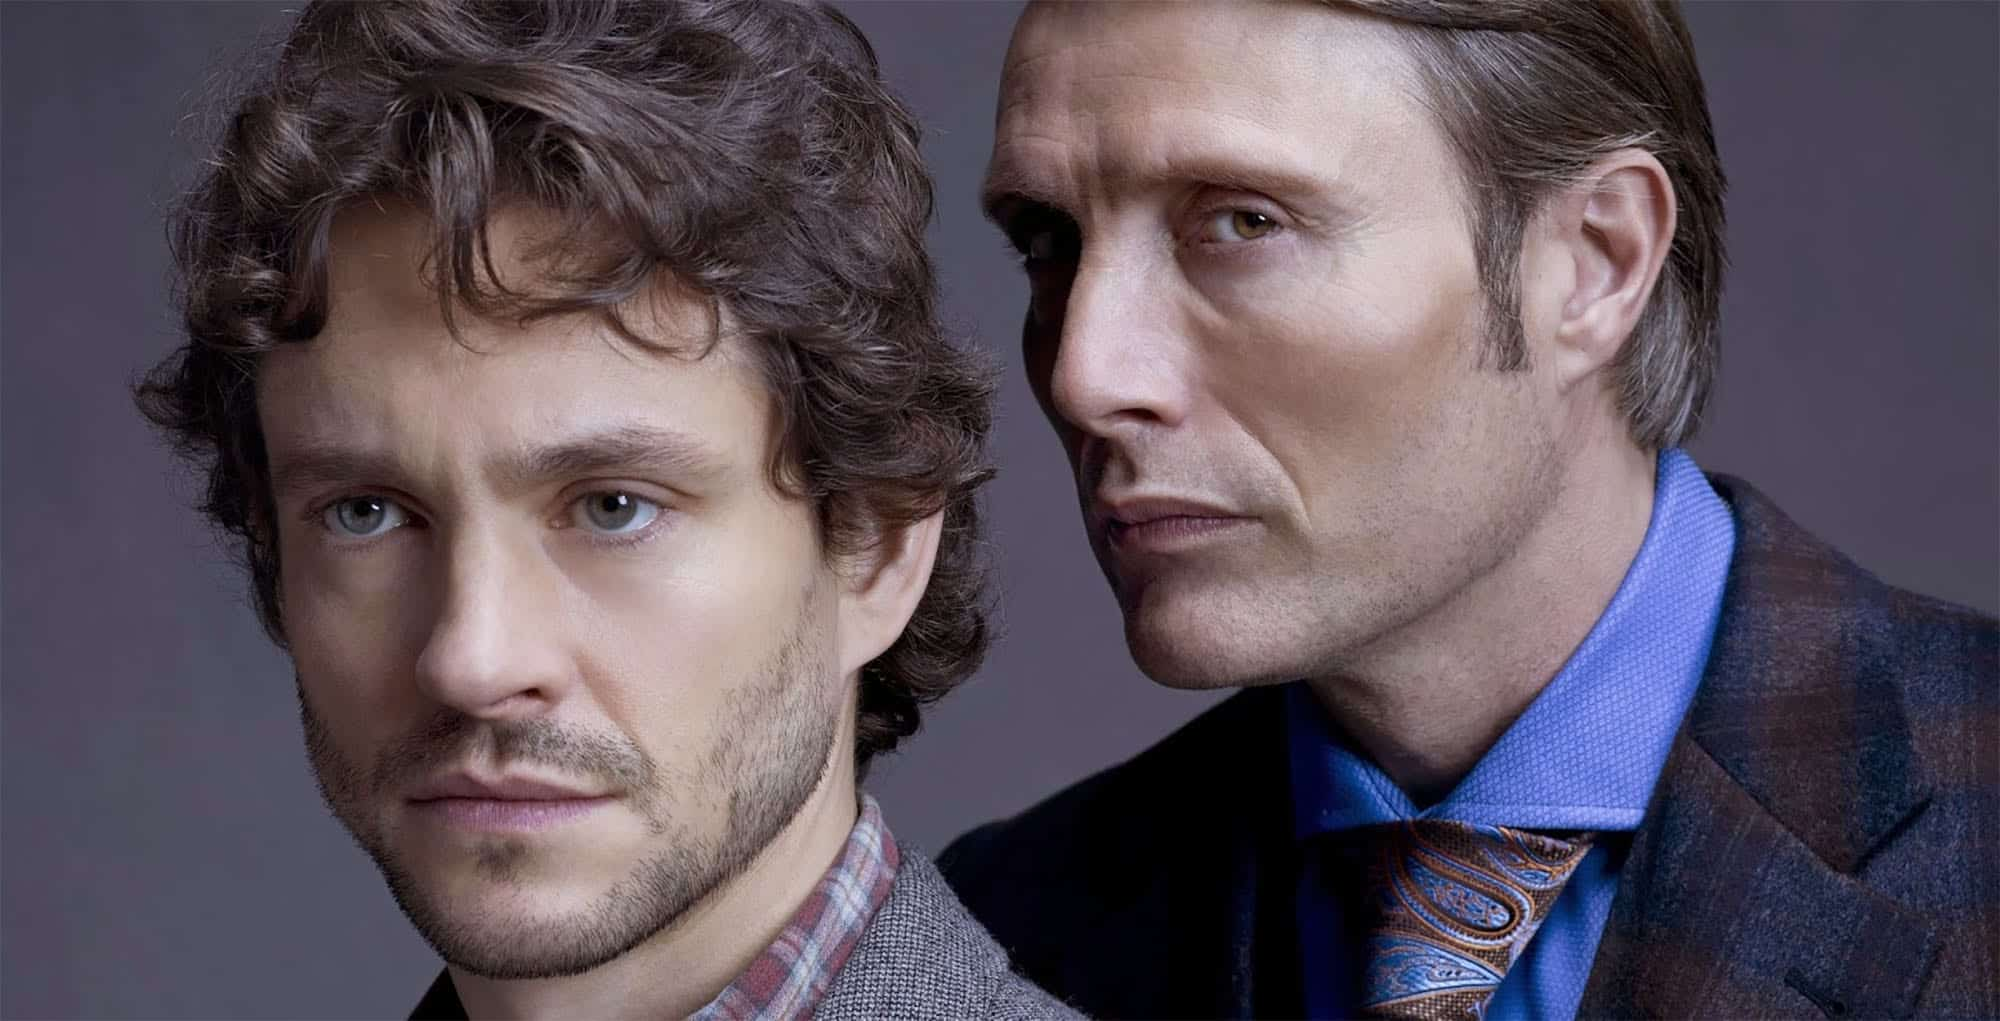 Here's our ranking of nine of the sexiest ever Hannigram moments that continue to keep us pining for more from 'Hannibal'.